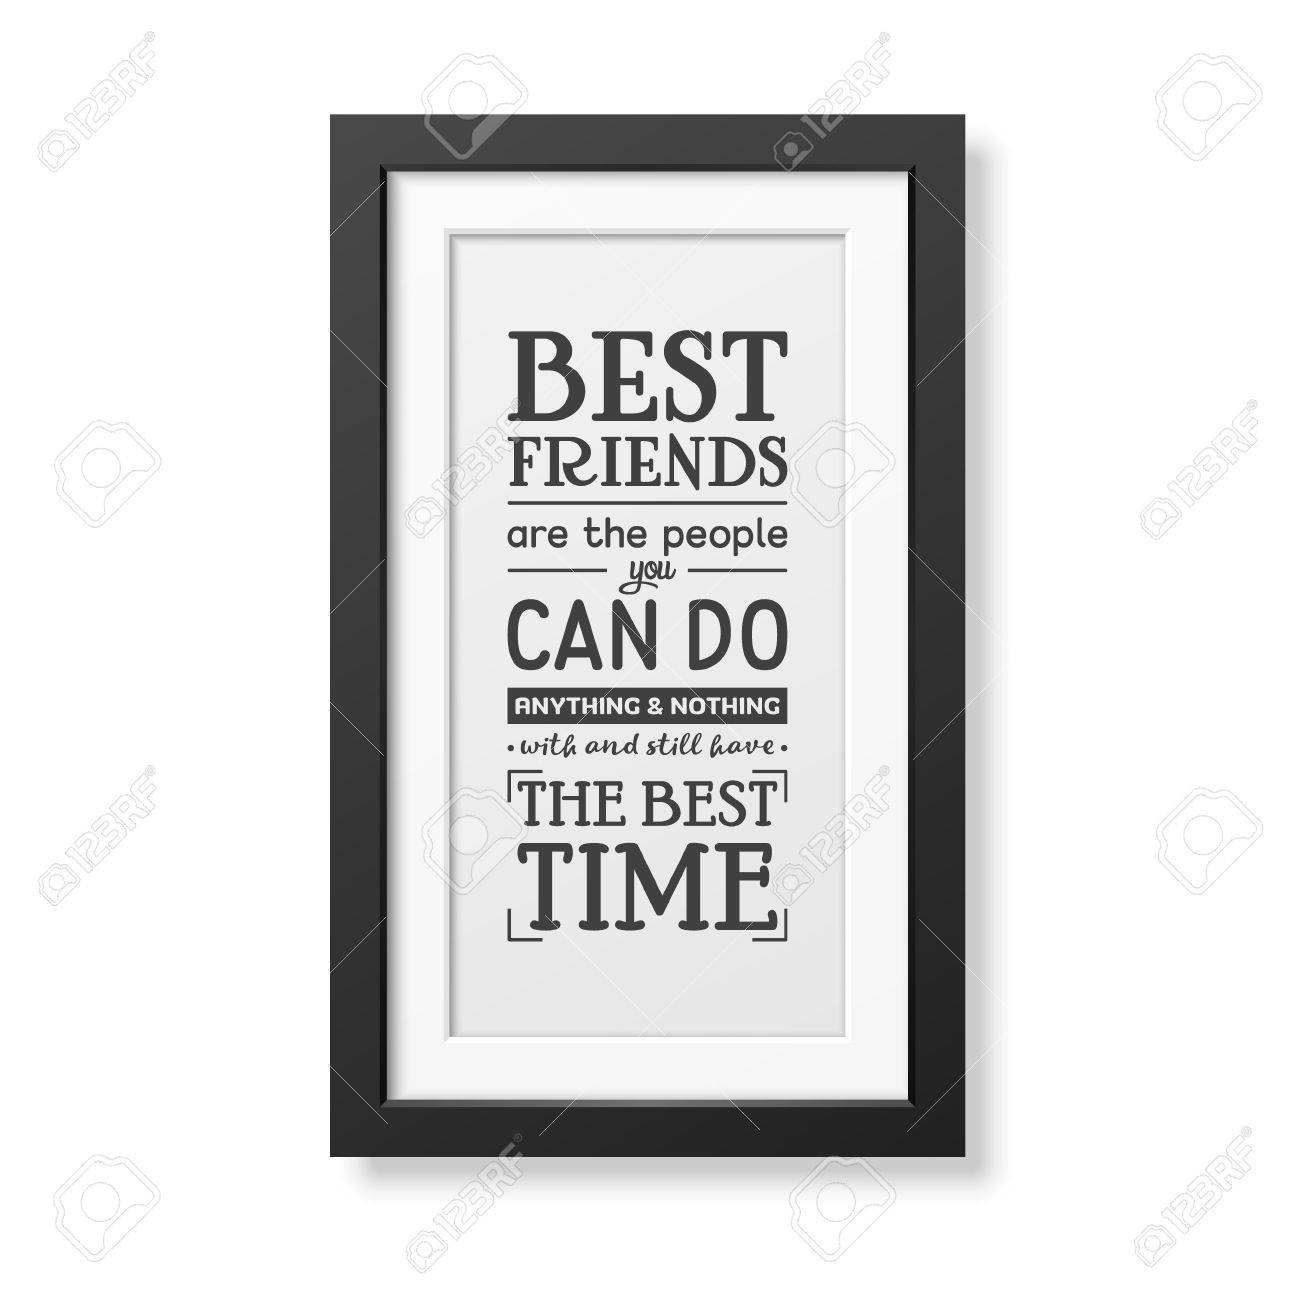 best friends are the people you can do anything and nothing with rh 123rf com Friends Keyhole Frame Cute Border for Friends